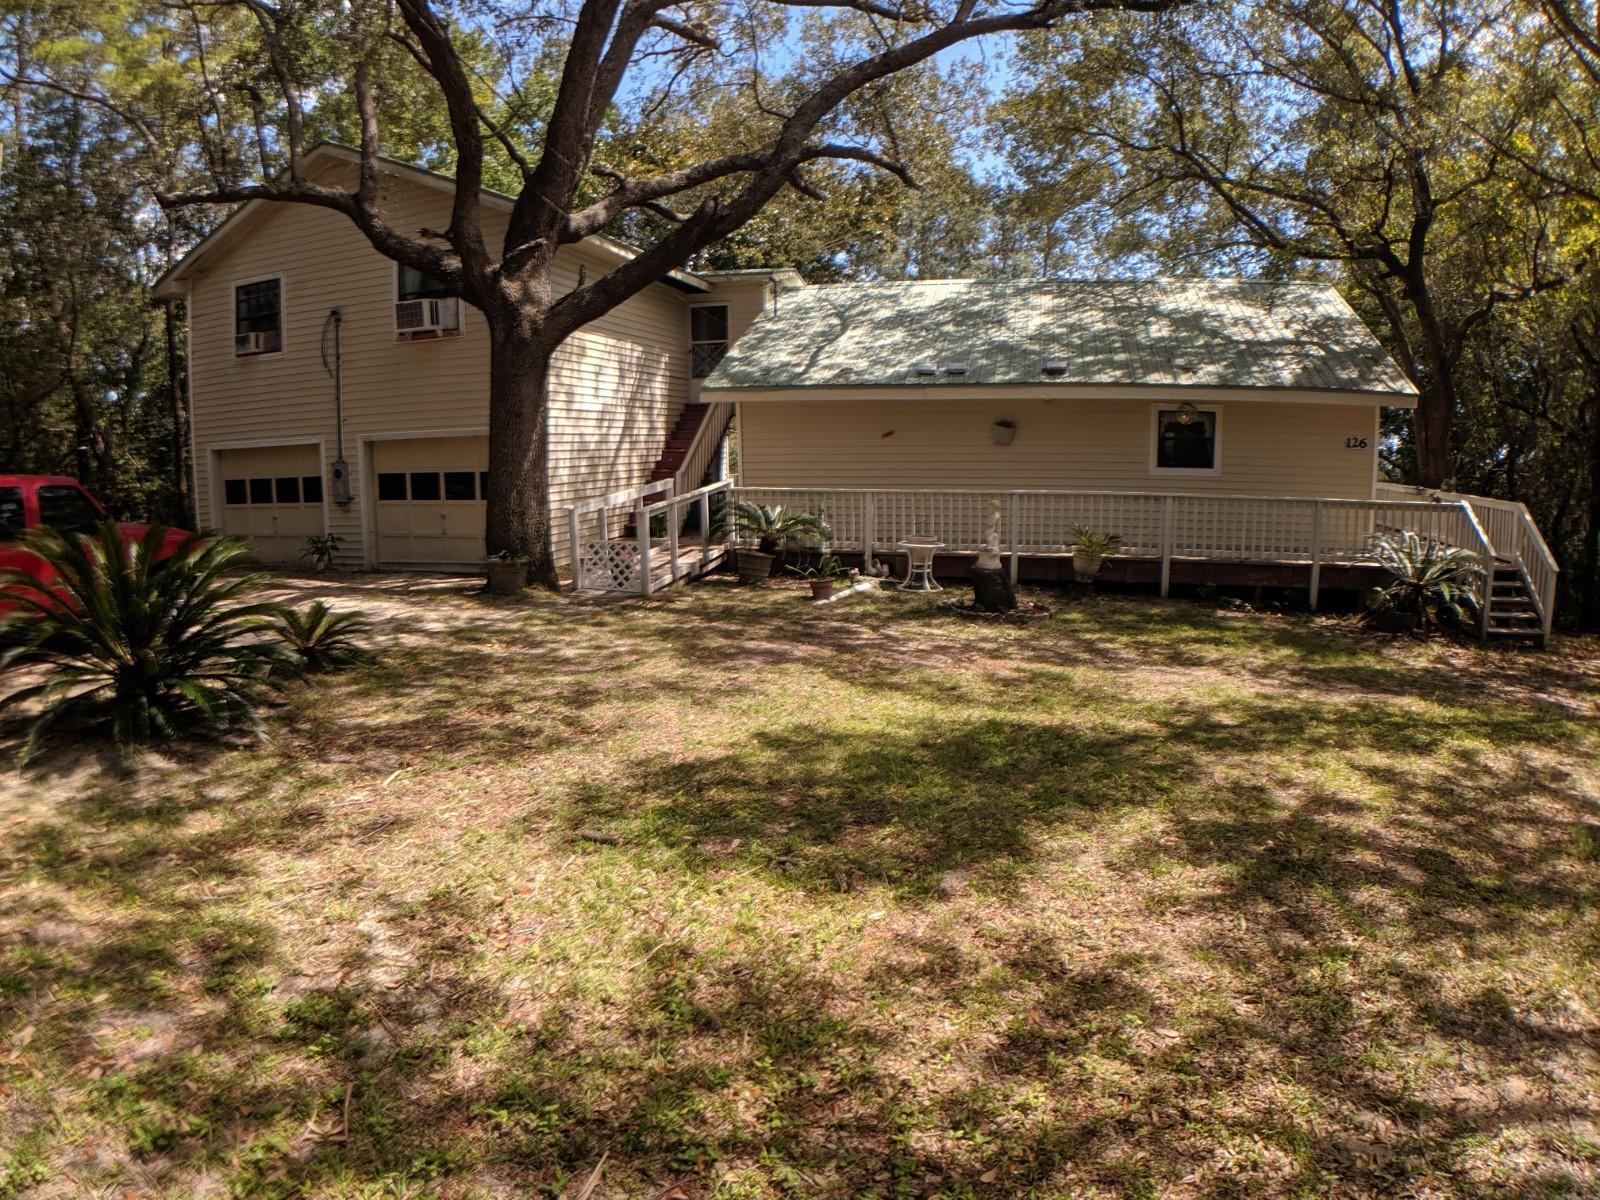 Photo of home for sale at 126 Chippewa, Niceville FL